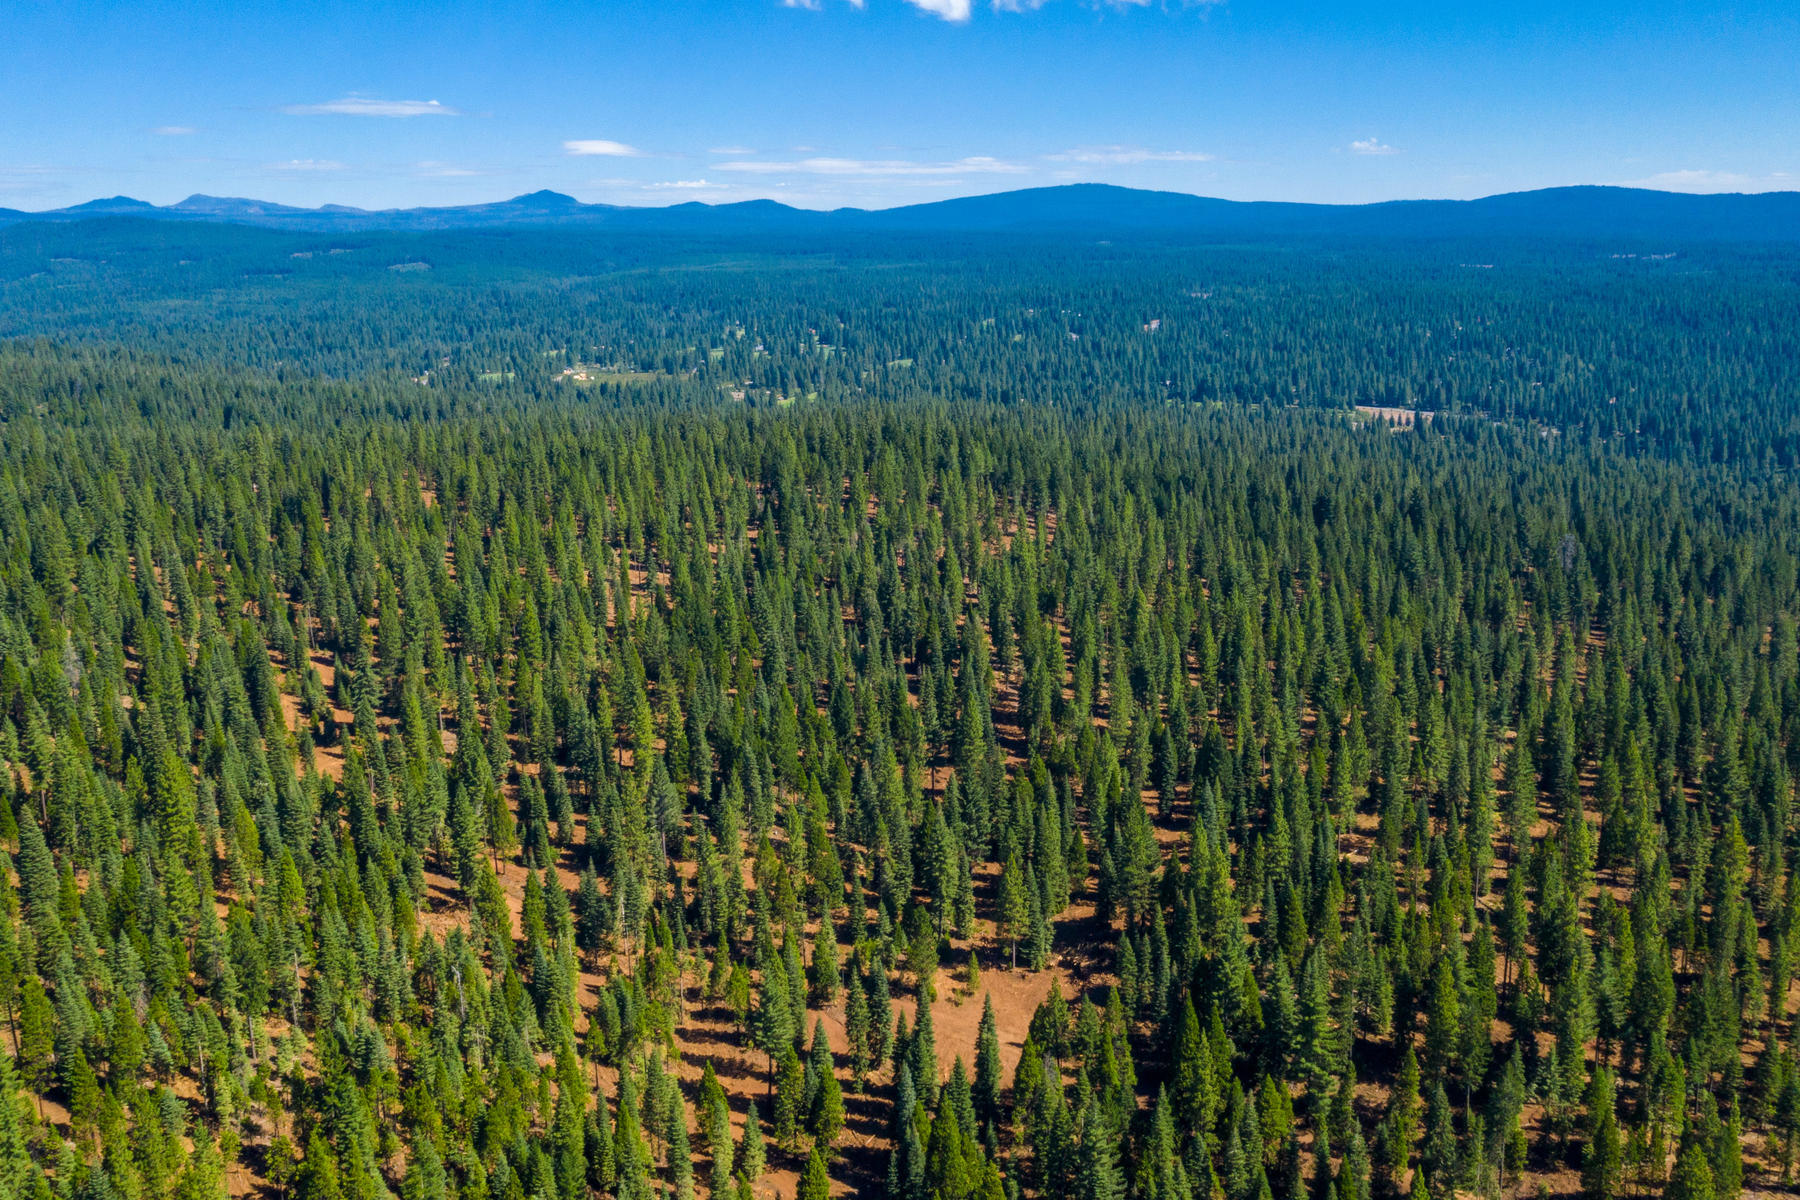 Additional photo for property listing at 103-02 Clifford Drive Lake Almanor, California 96137 103-02 Clifford Drive Lake Almanor, California 96137 United States